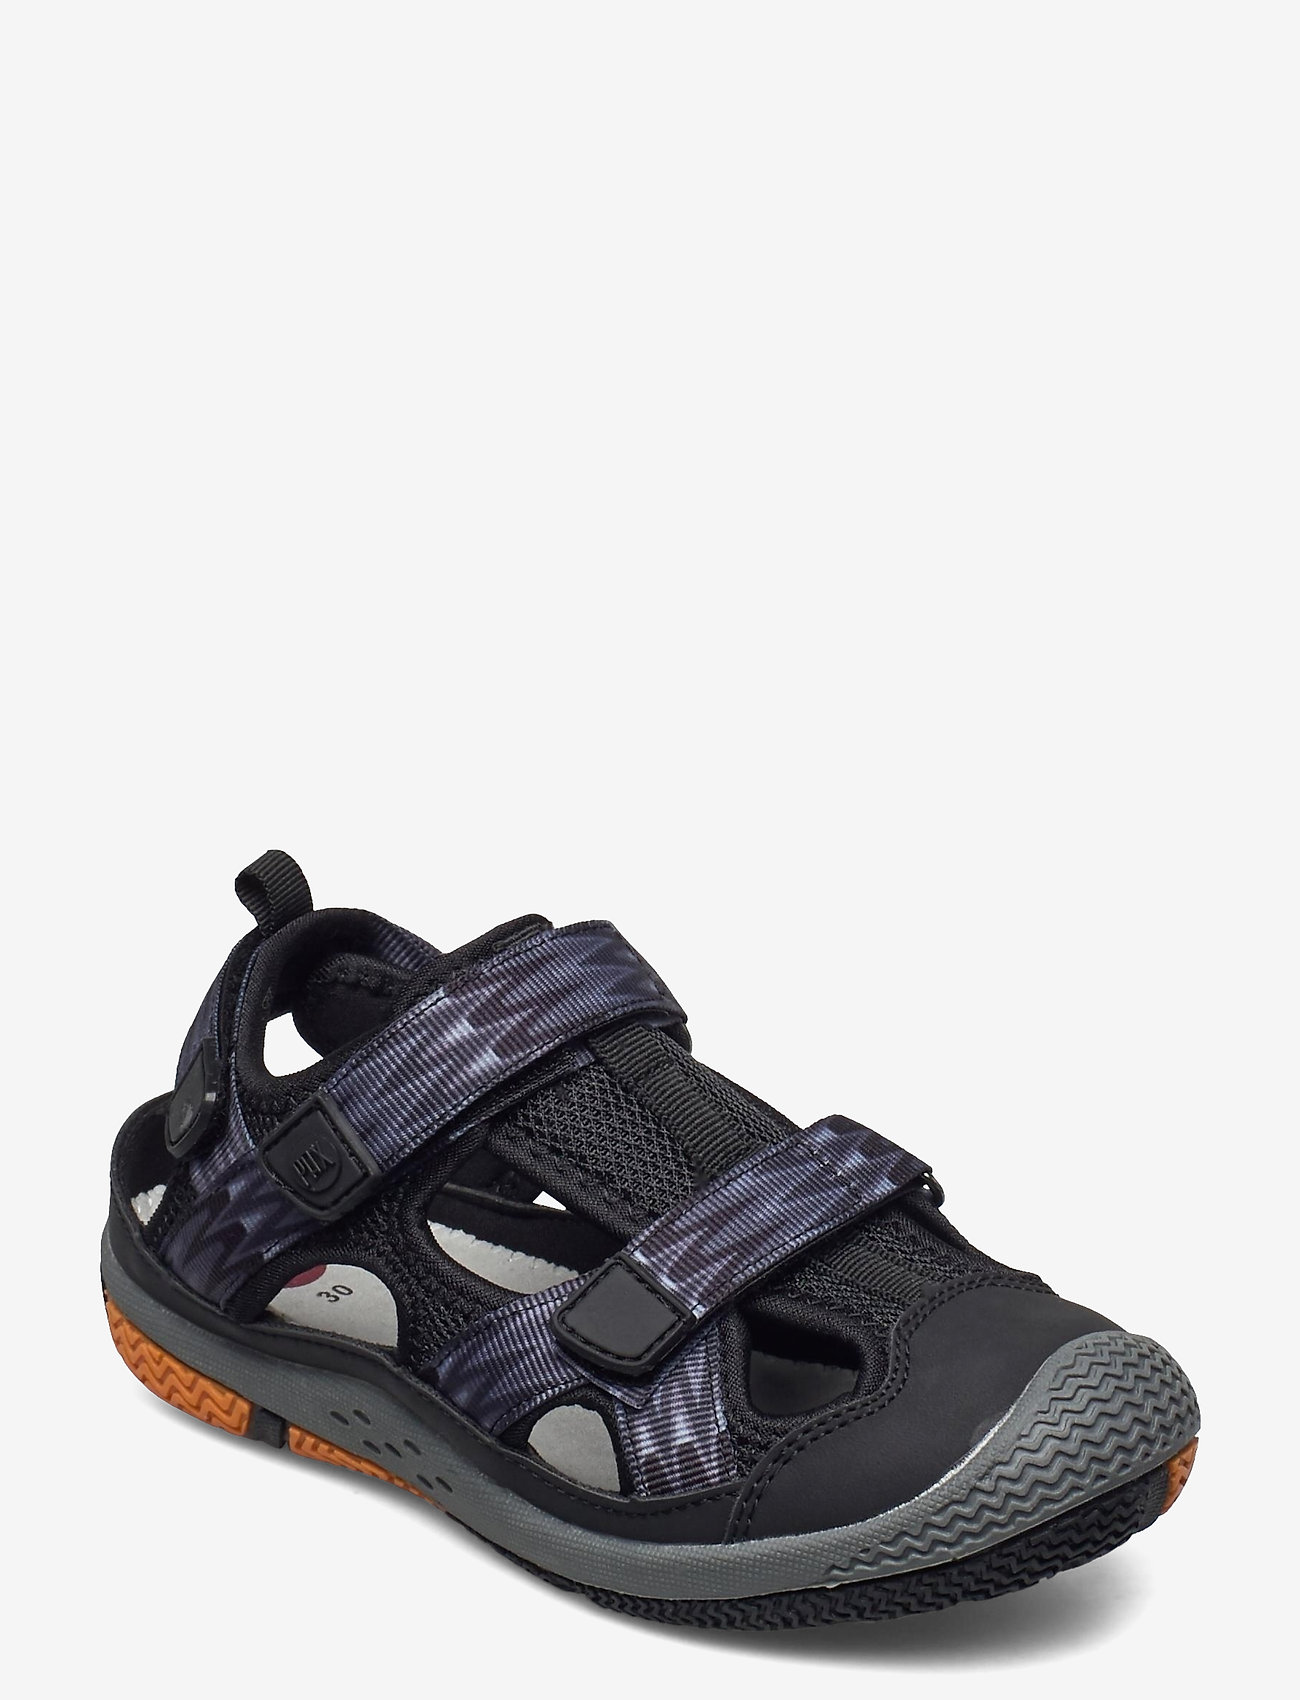 PAX - SAVIOR - schuhe - black/multi - 0